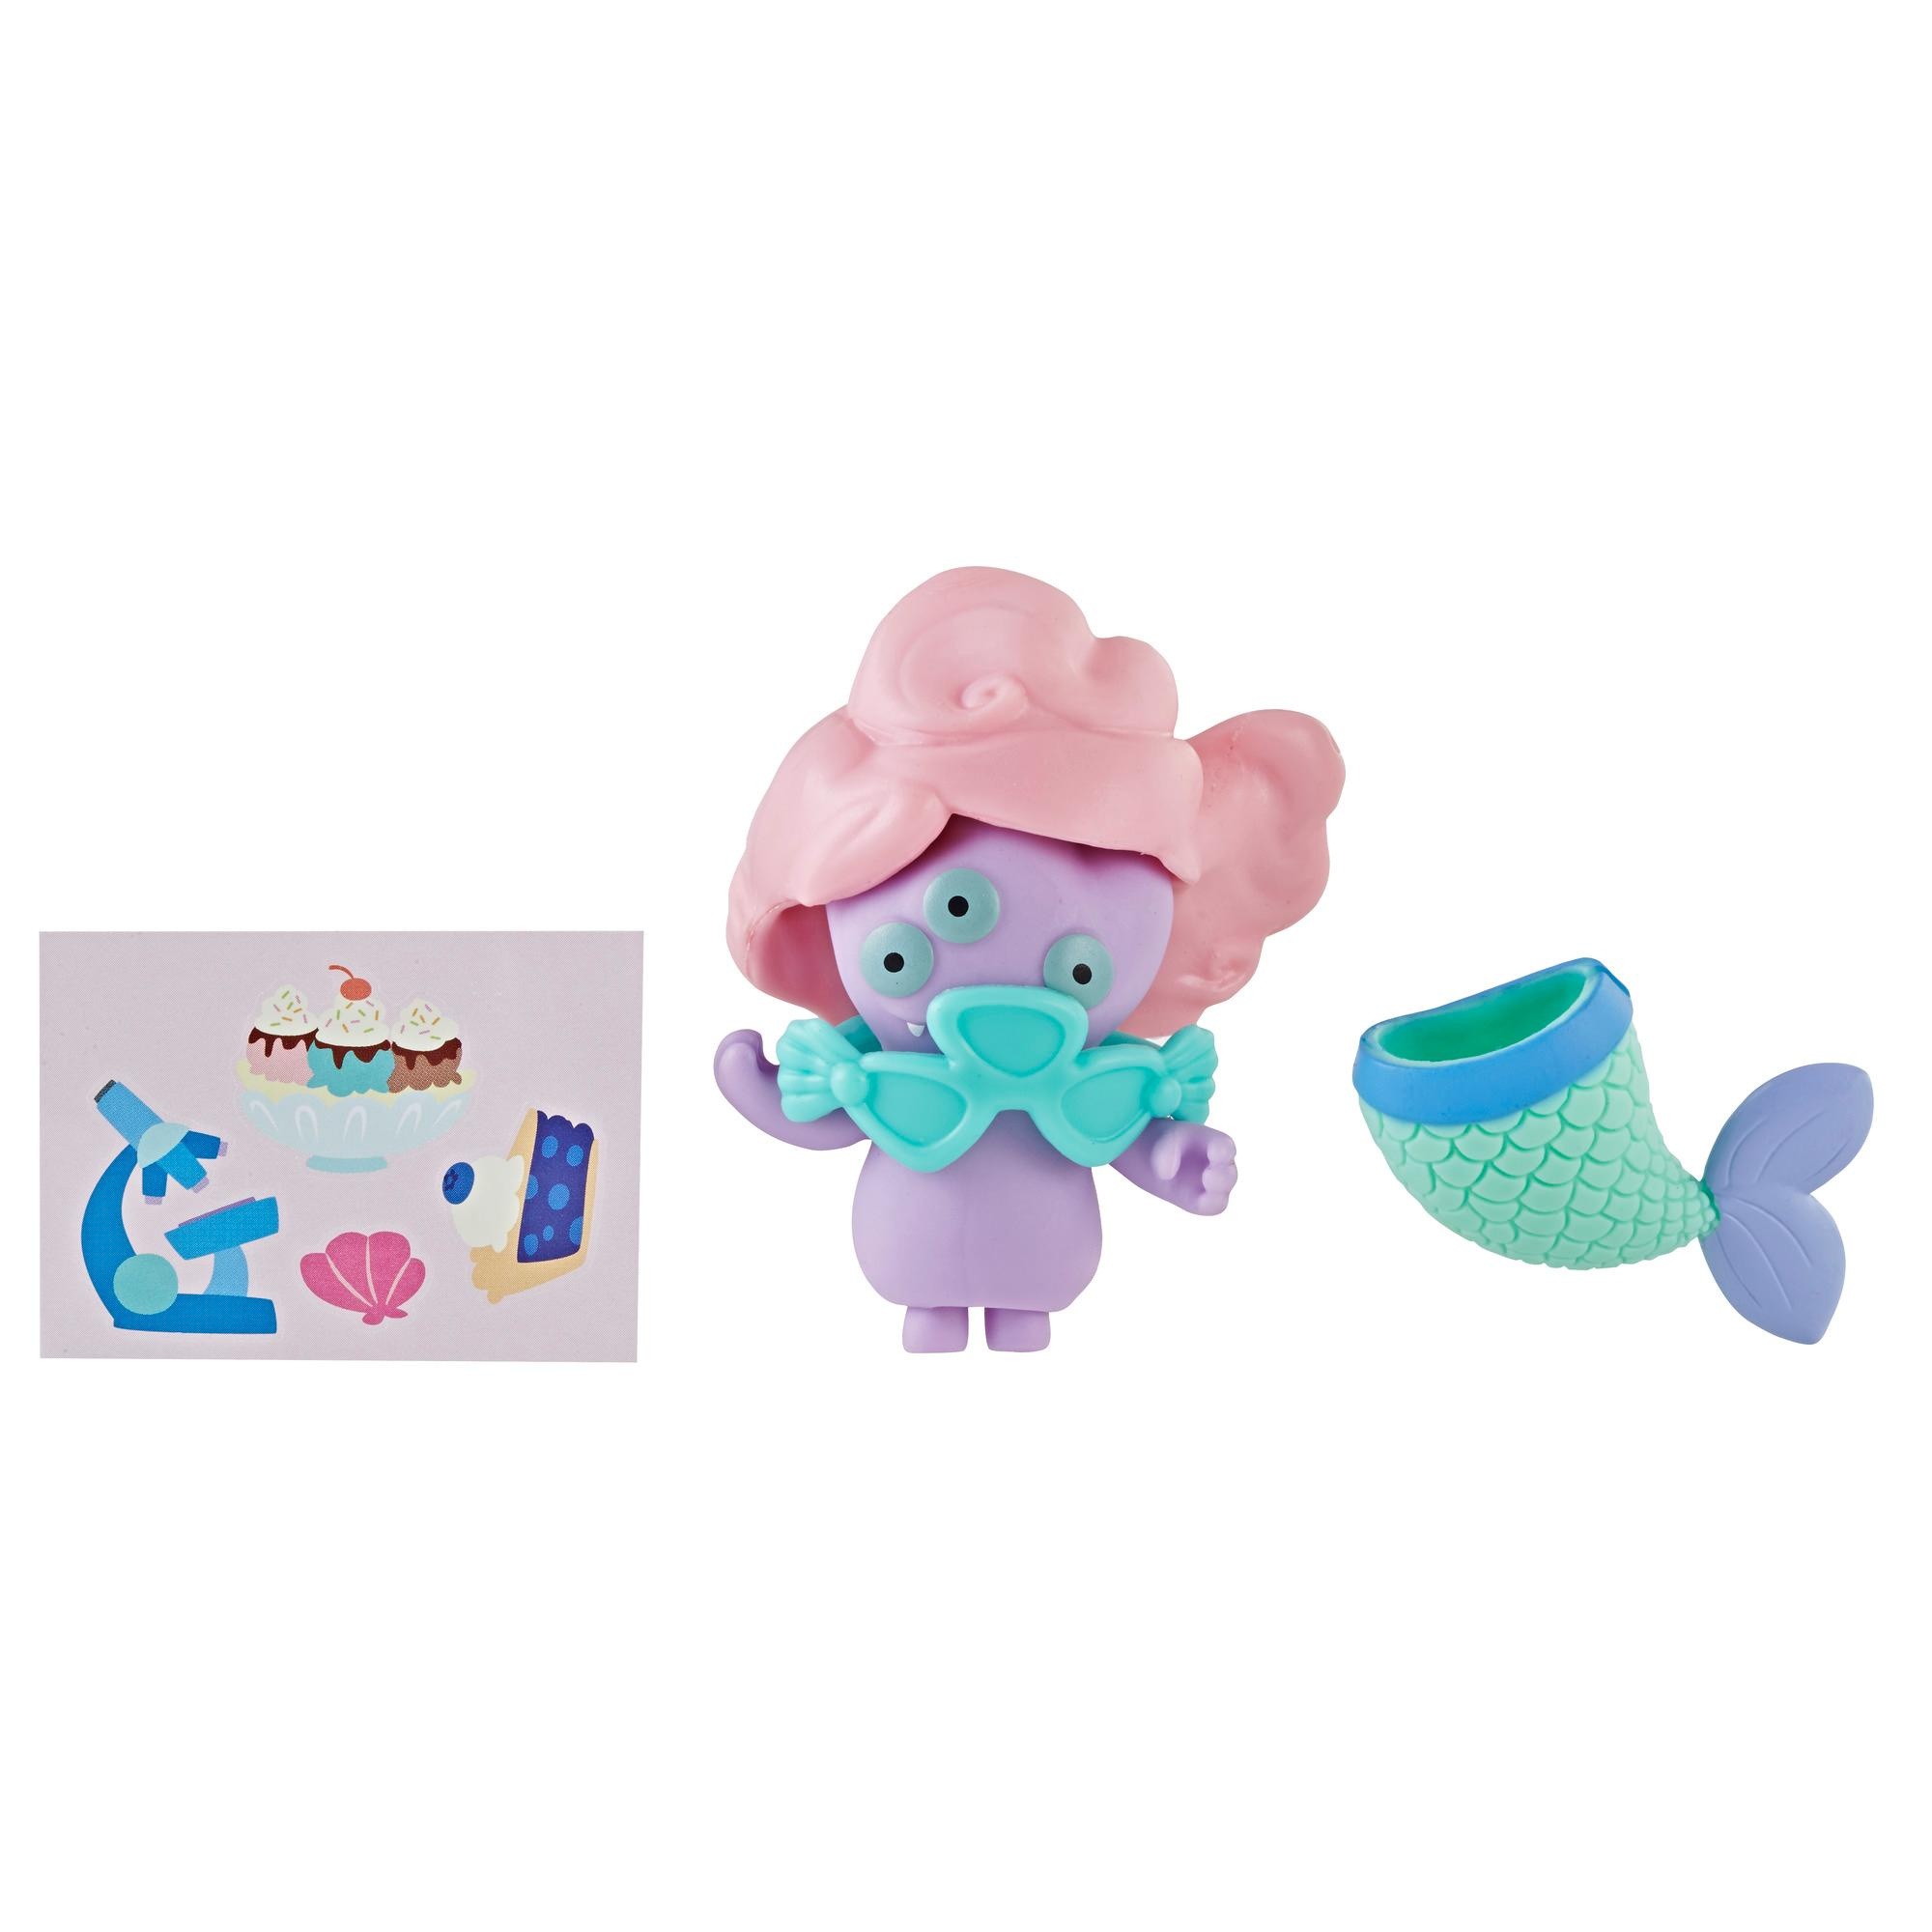 UglyDolls Surprise Disguise Mermaid Maiden Tray Toy, Figure and Accessories